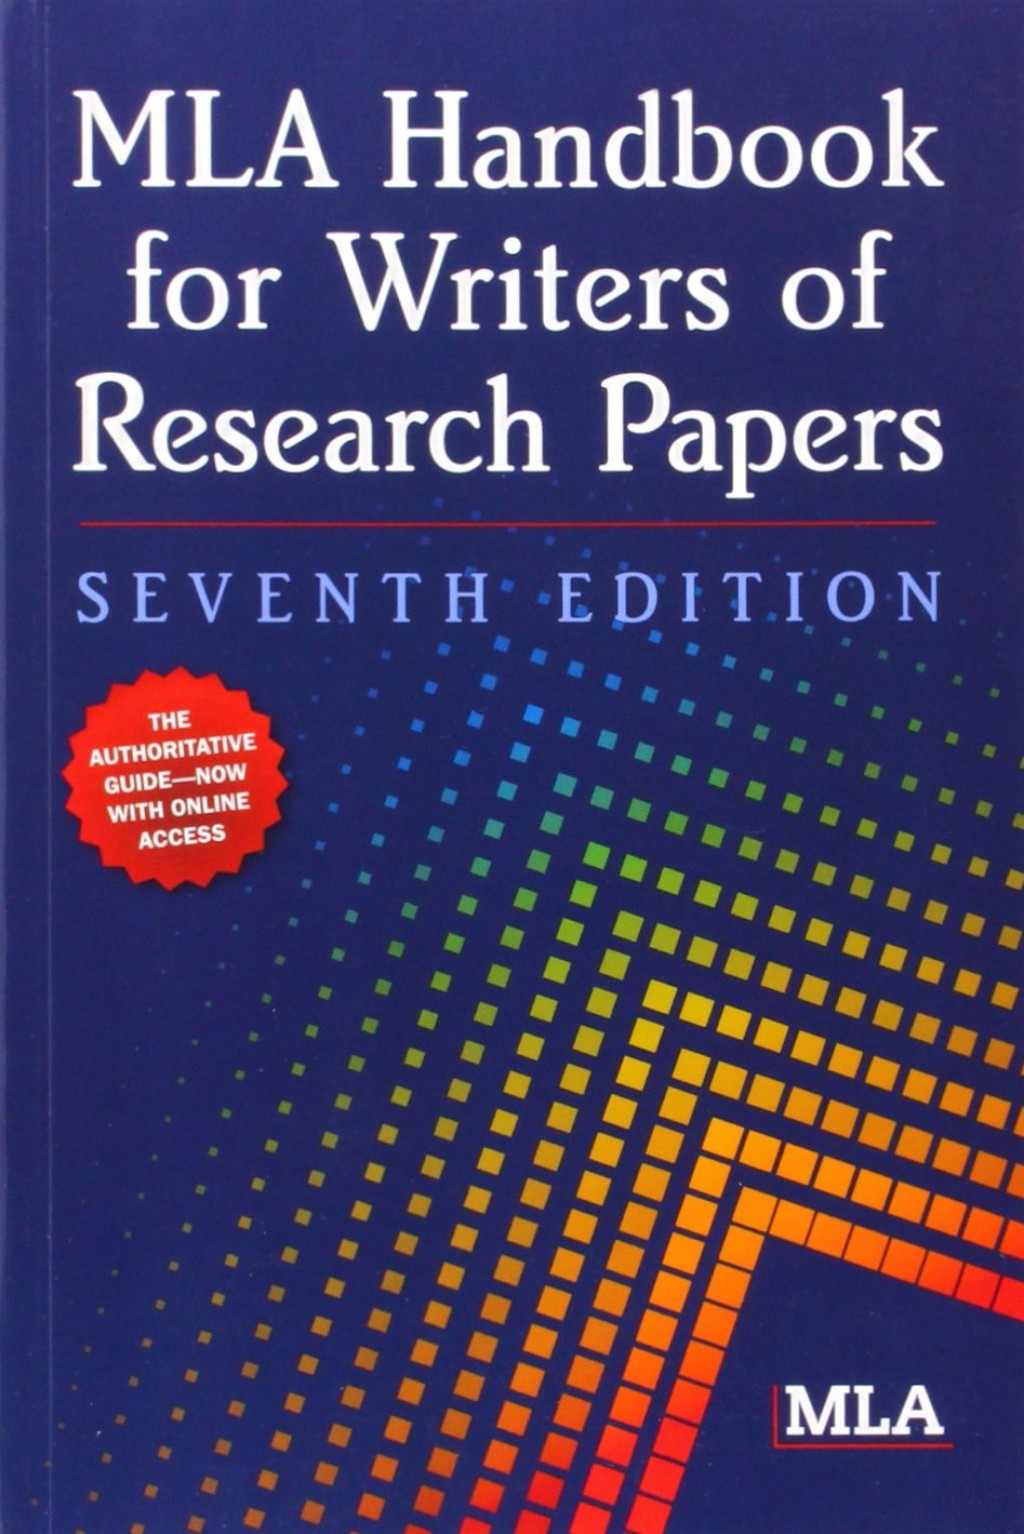 001 Research Paper 71lknvqs6gl Mla Handbook For Writers Of Papers 7th Edition Wondrous Pdf Free Download Large